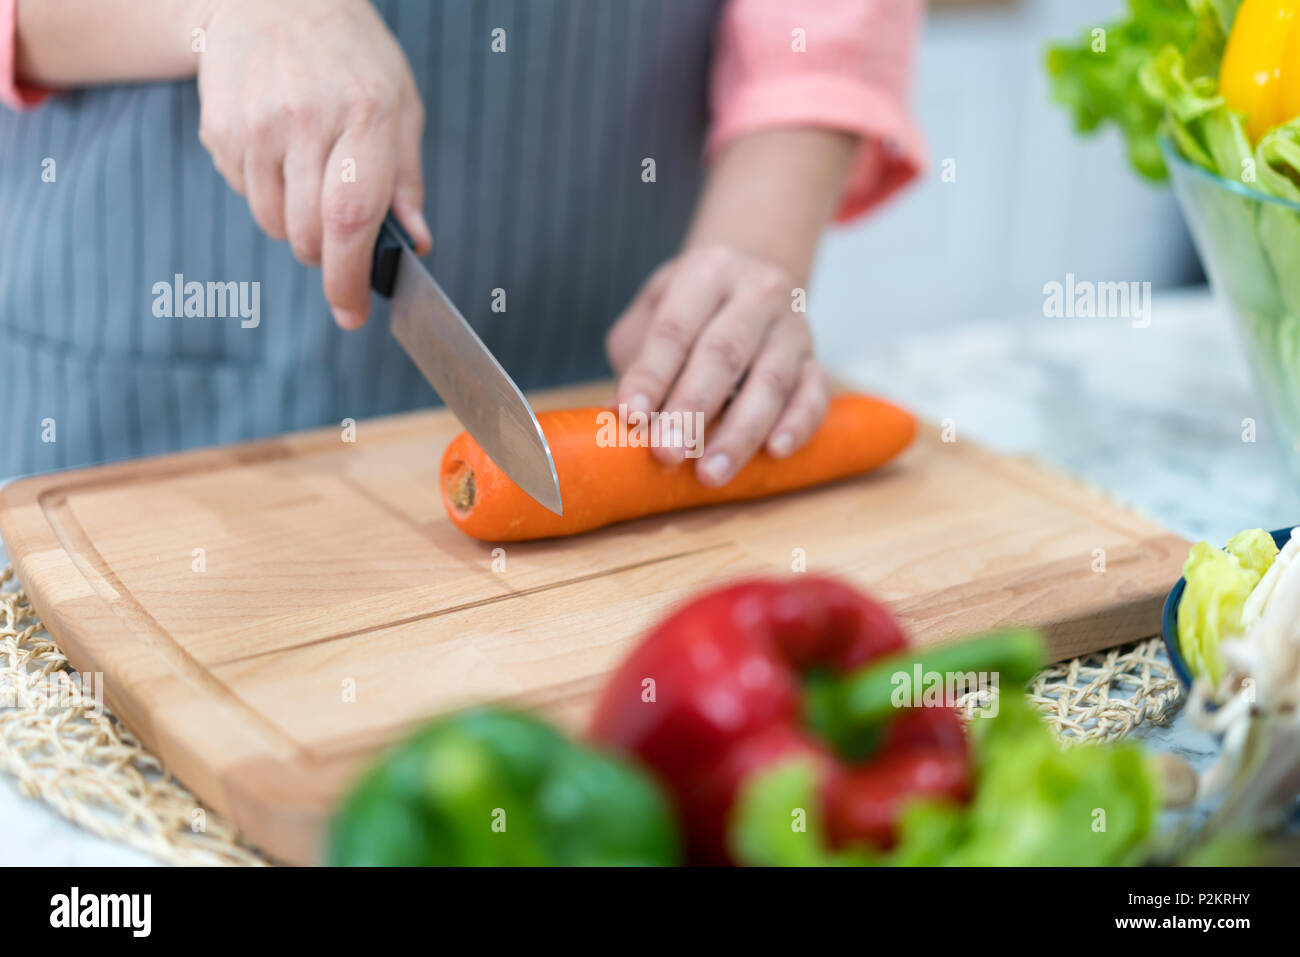 Hand with knife cutting carrot. Woman prepares food at table. Chef cooks delicious dinner. Work that requires skill. - Stock Image